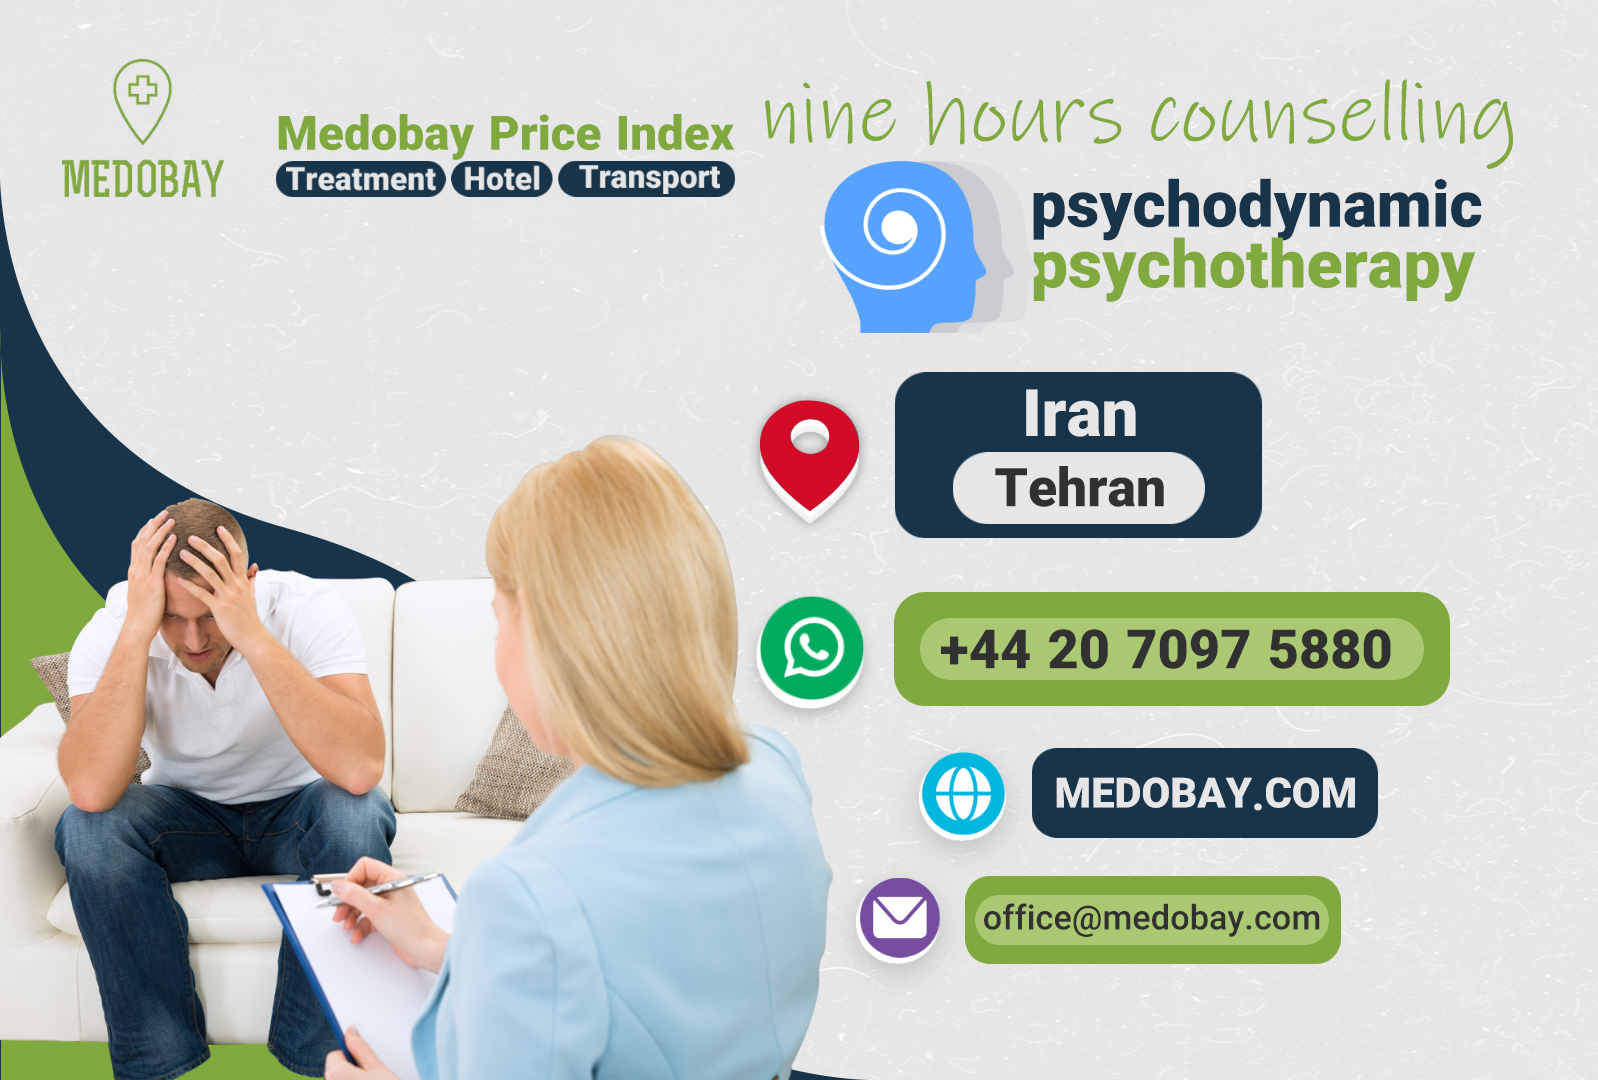 nine hours counselling  - tehran - iran